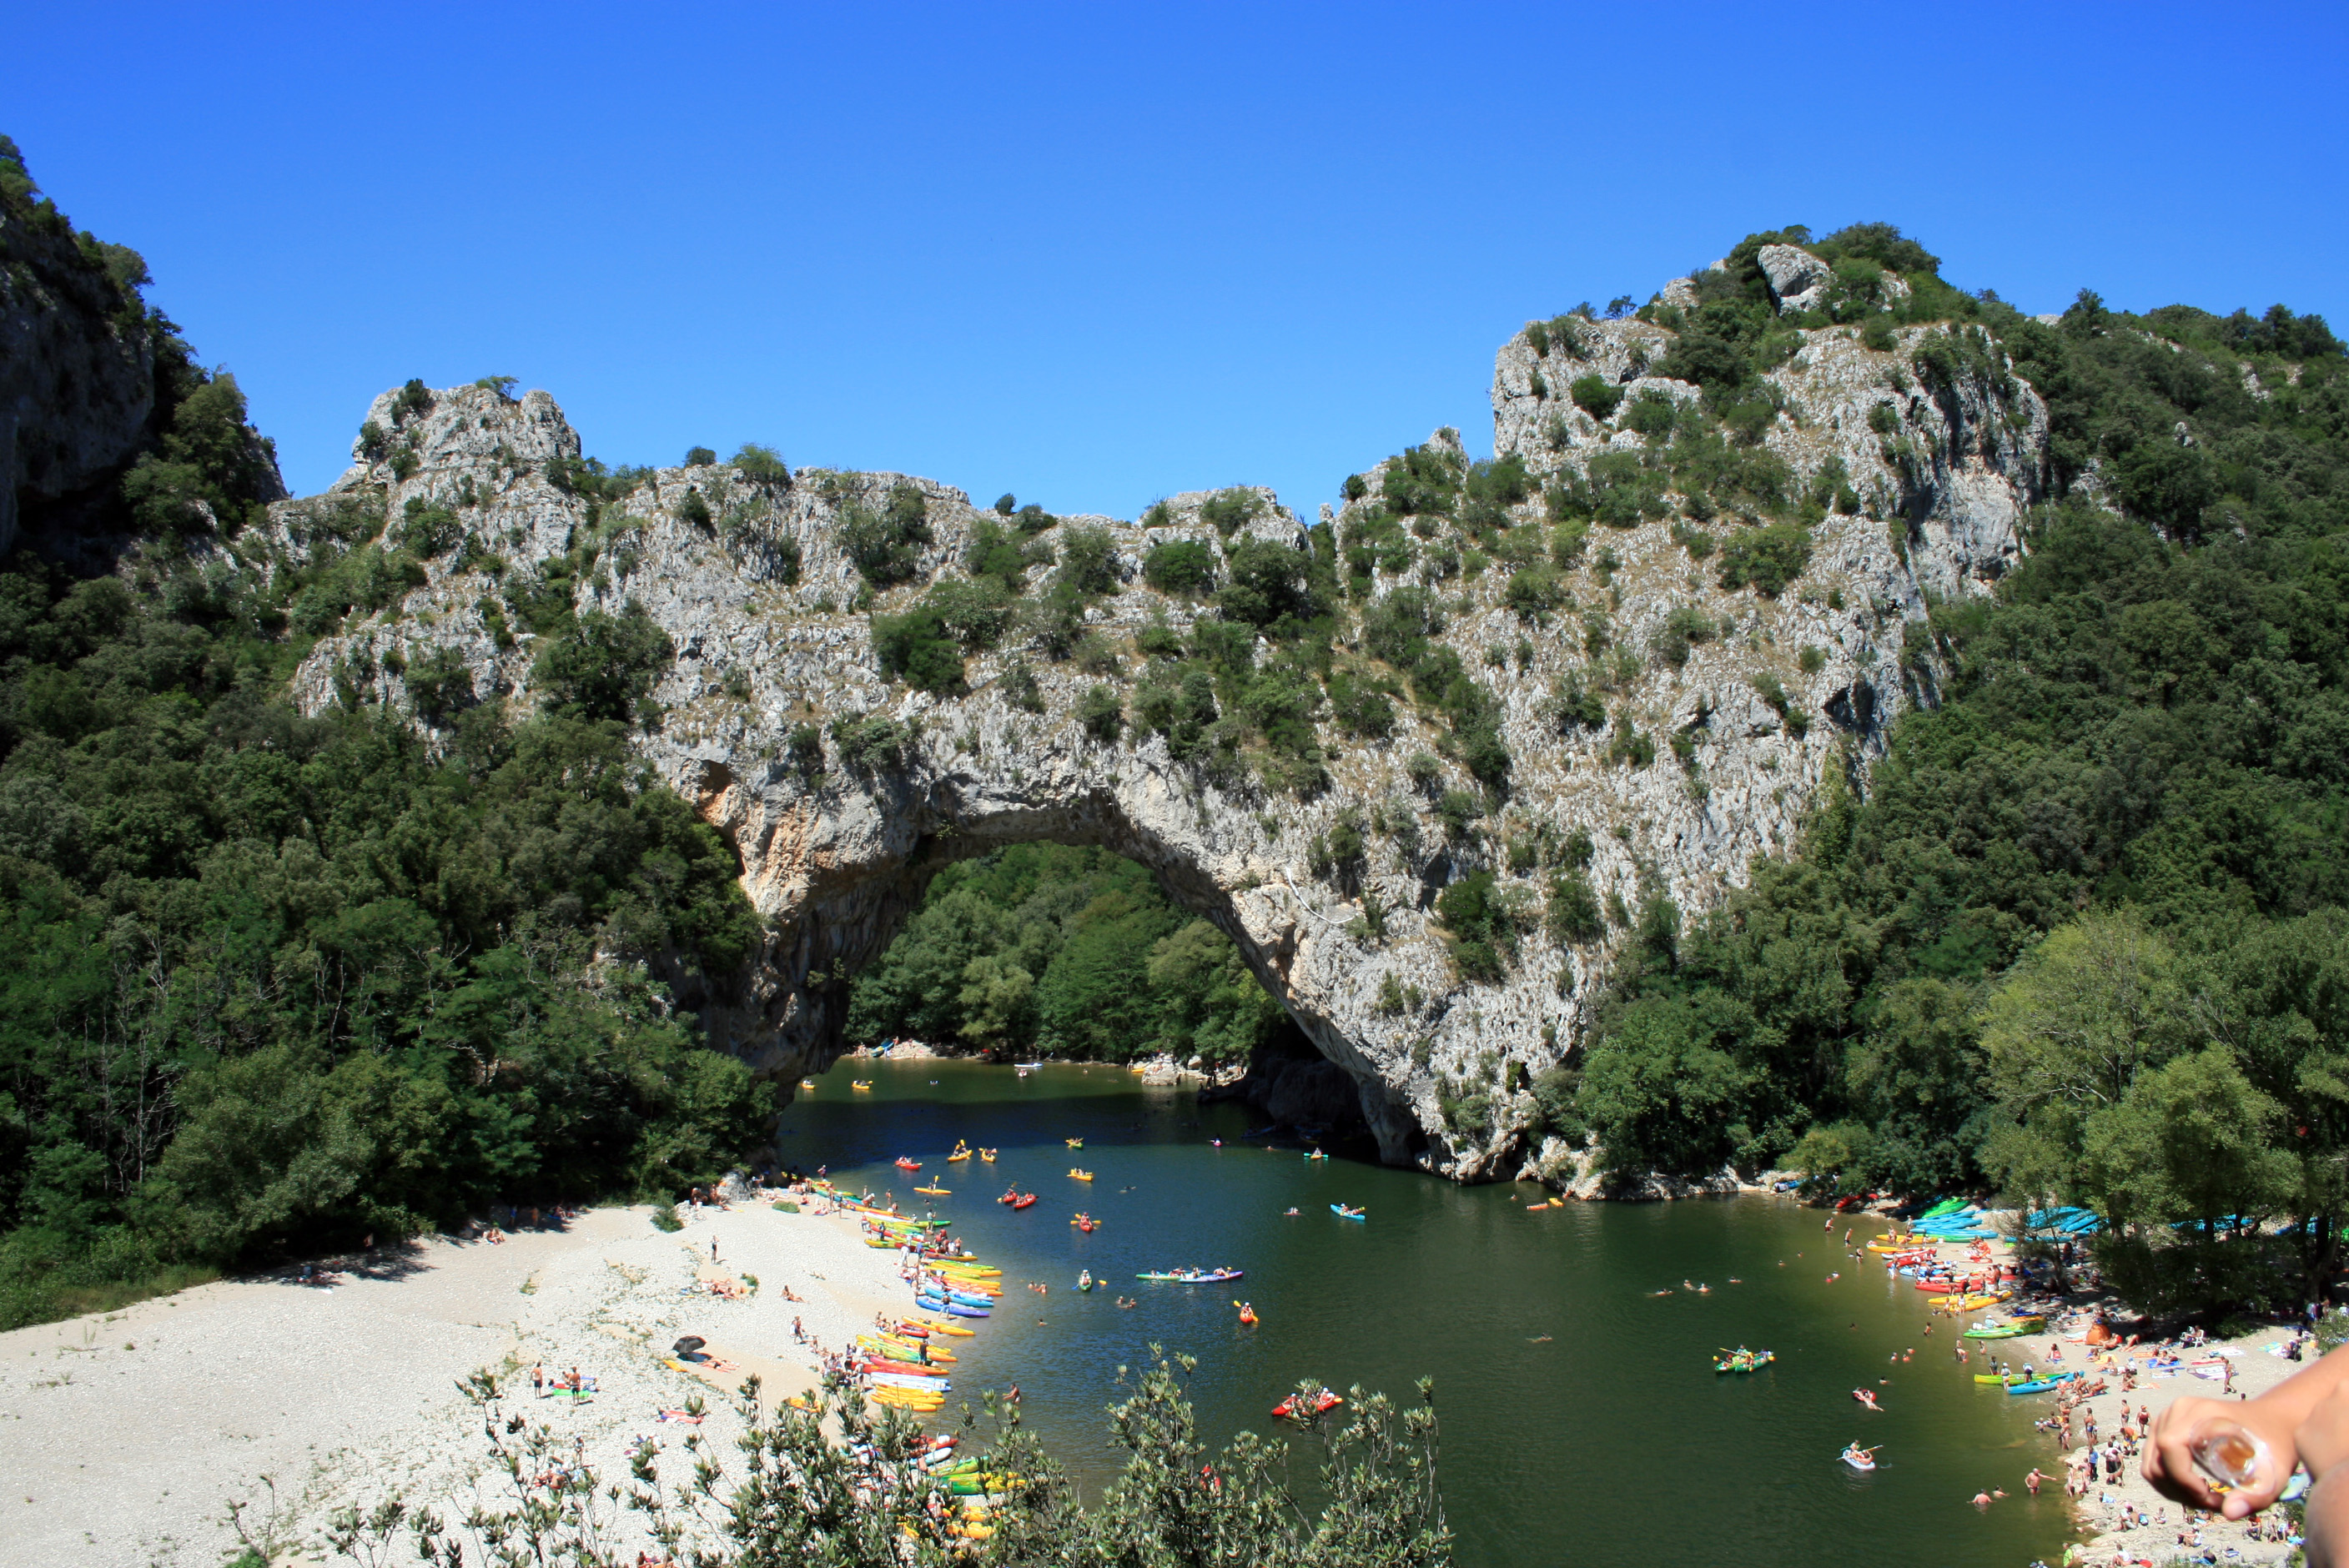 Pont d 39 arc sur freemages - Office de tourisme de vallon pont d arc ...